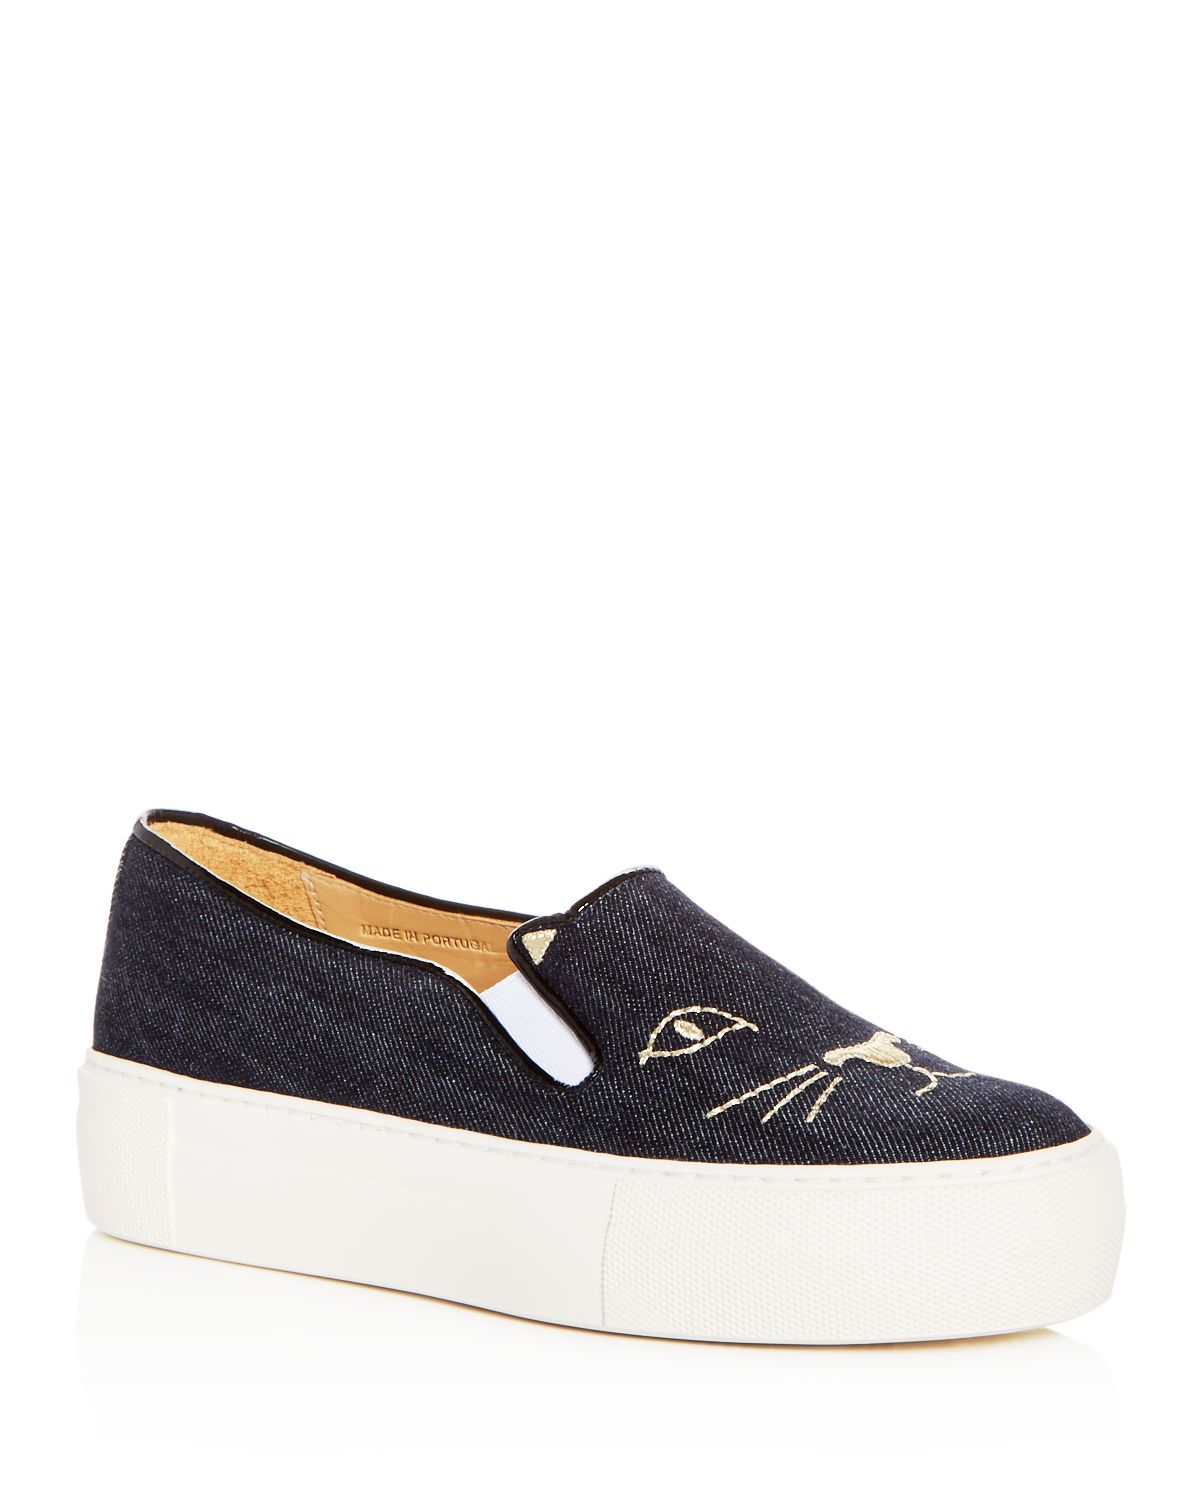 Women's Kitty Embroidered Denim Platform Slip On Sneakers by Charlotte Olympia